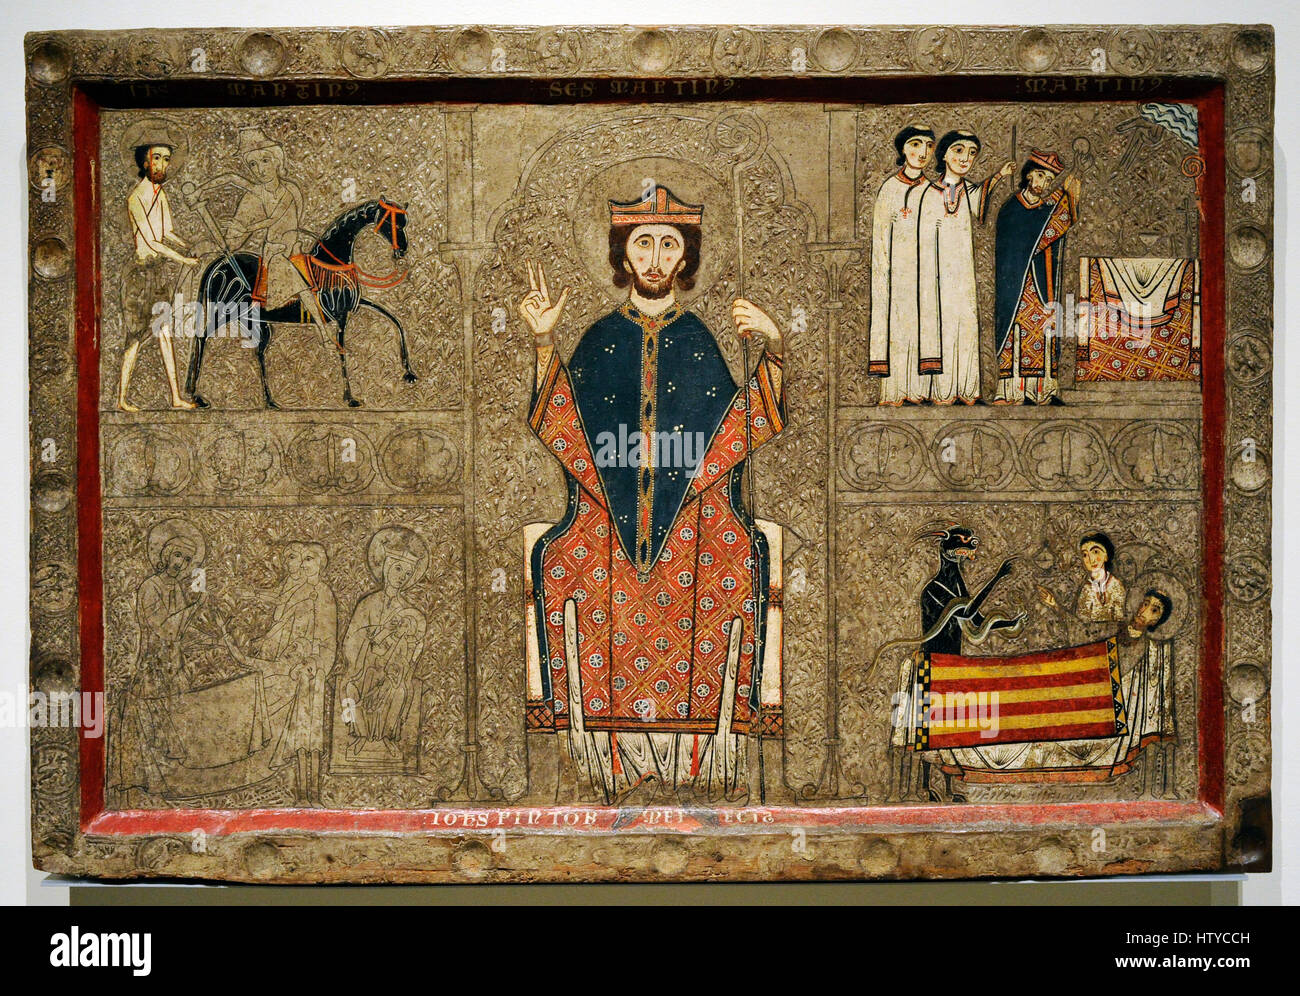 Iohannes. Ribagorza workshop. Altar frontal from Gia, 2nd half of 13th century. From the Church of Sant Marti of - Stock Image